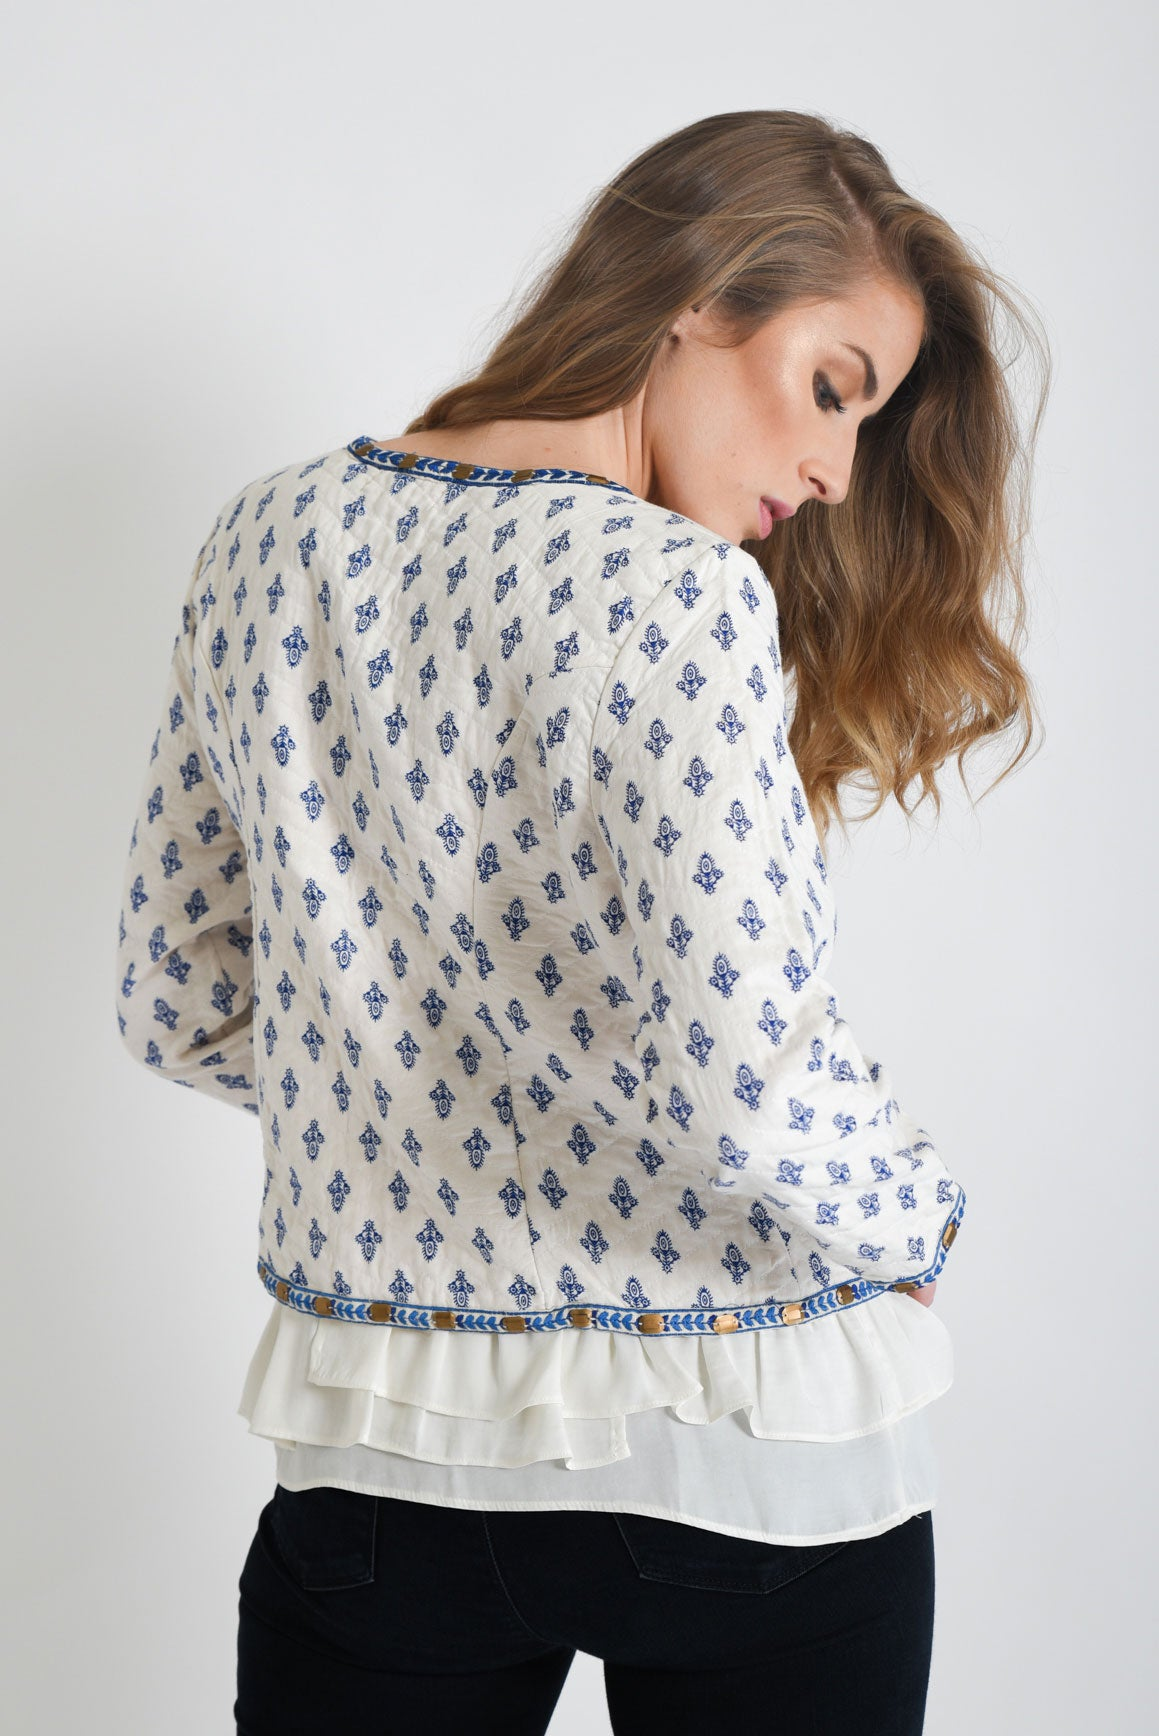 Shop White Embroidered Jacket | Aanya